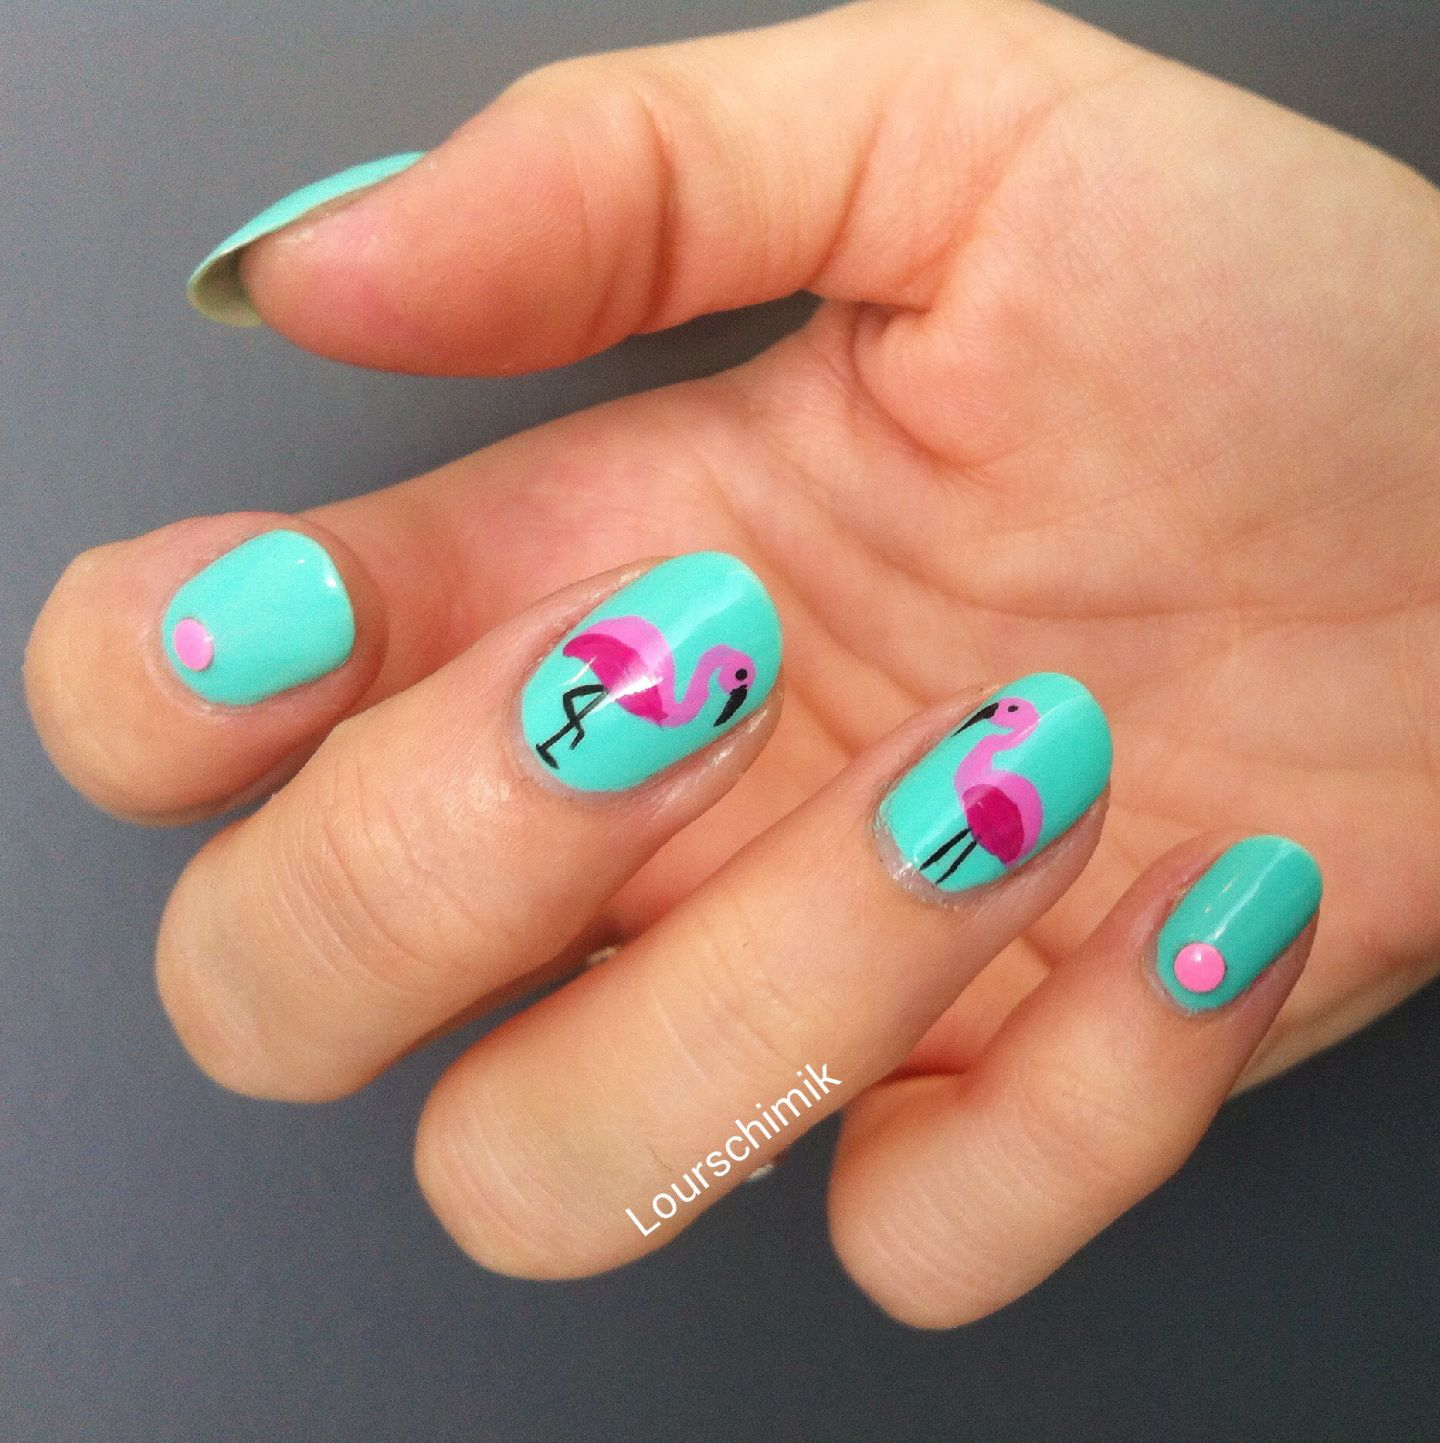 flamingo nails - des flamants roses qui sentent bon l'été